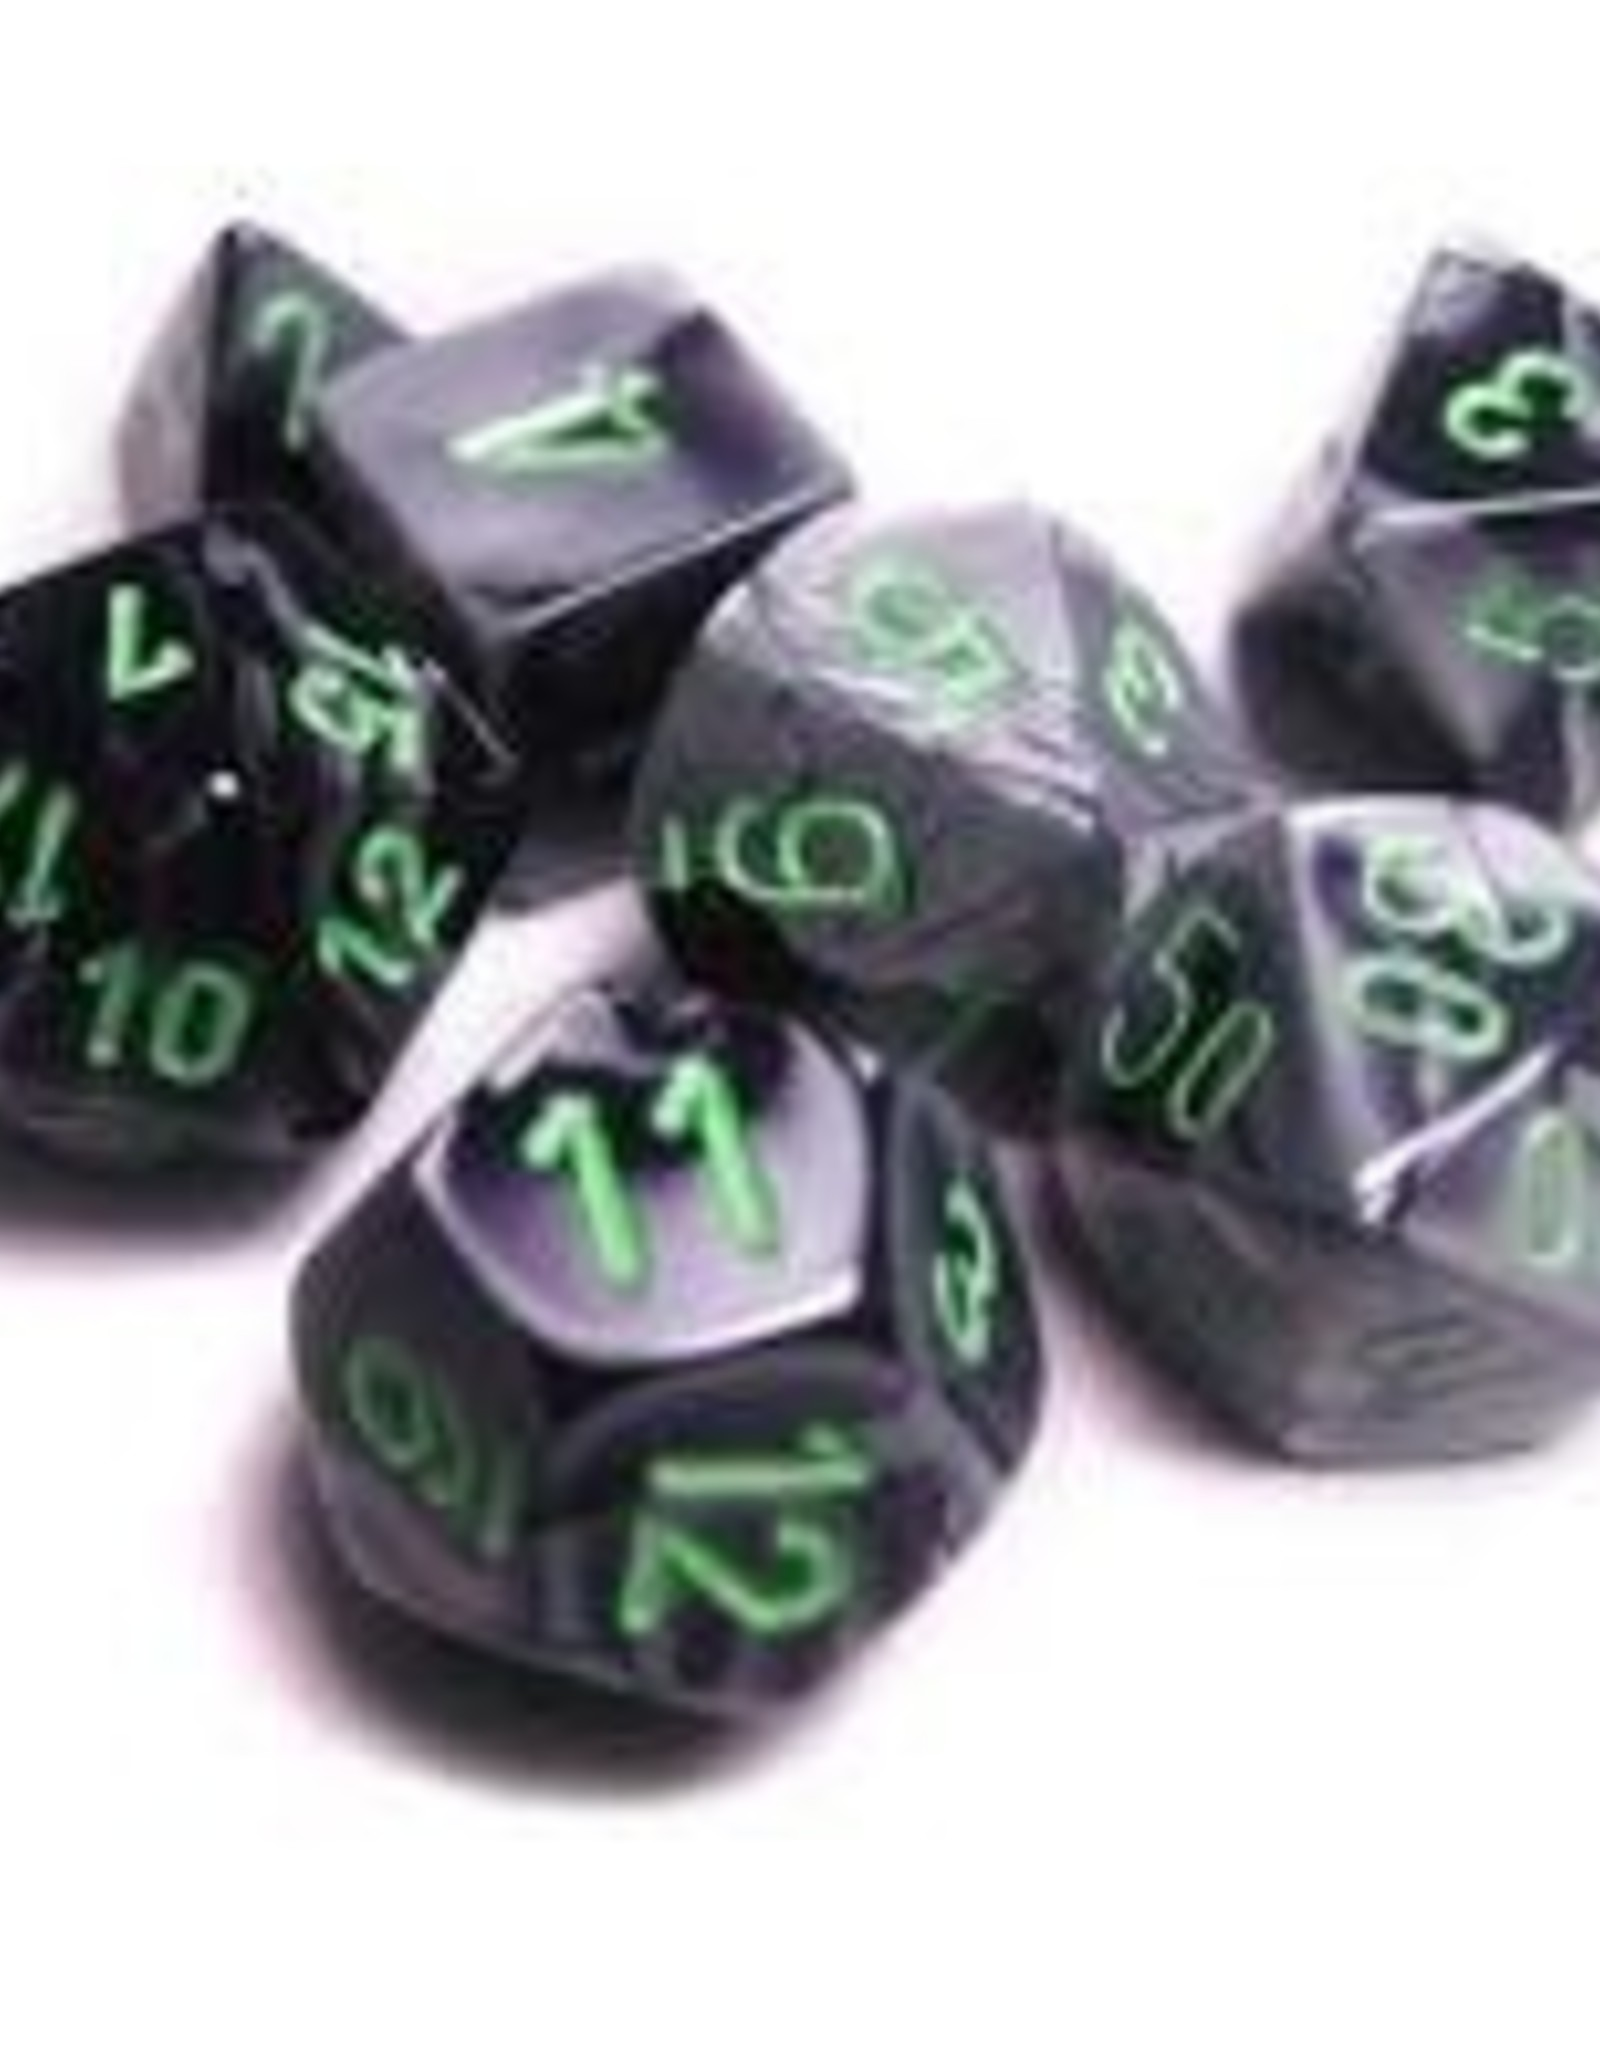 Chessex Chessex CHX26445 Dice-Gemini Set, Black/Grey/Green